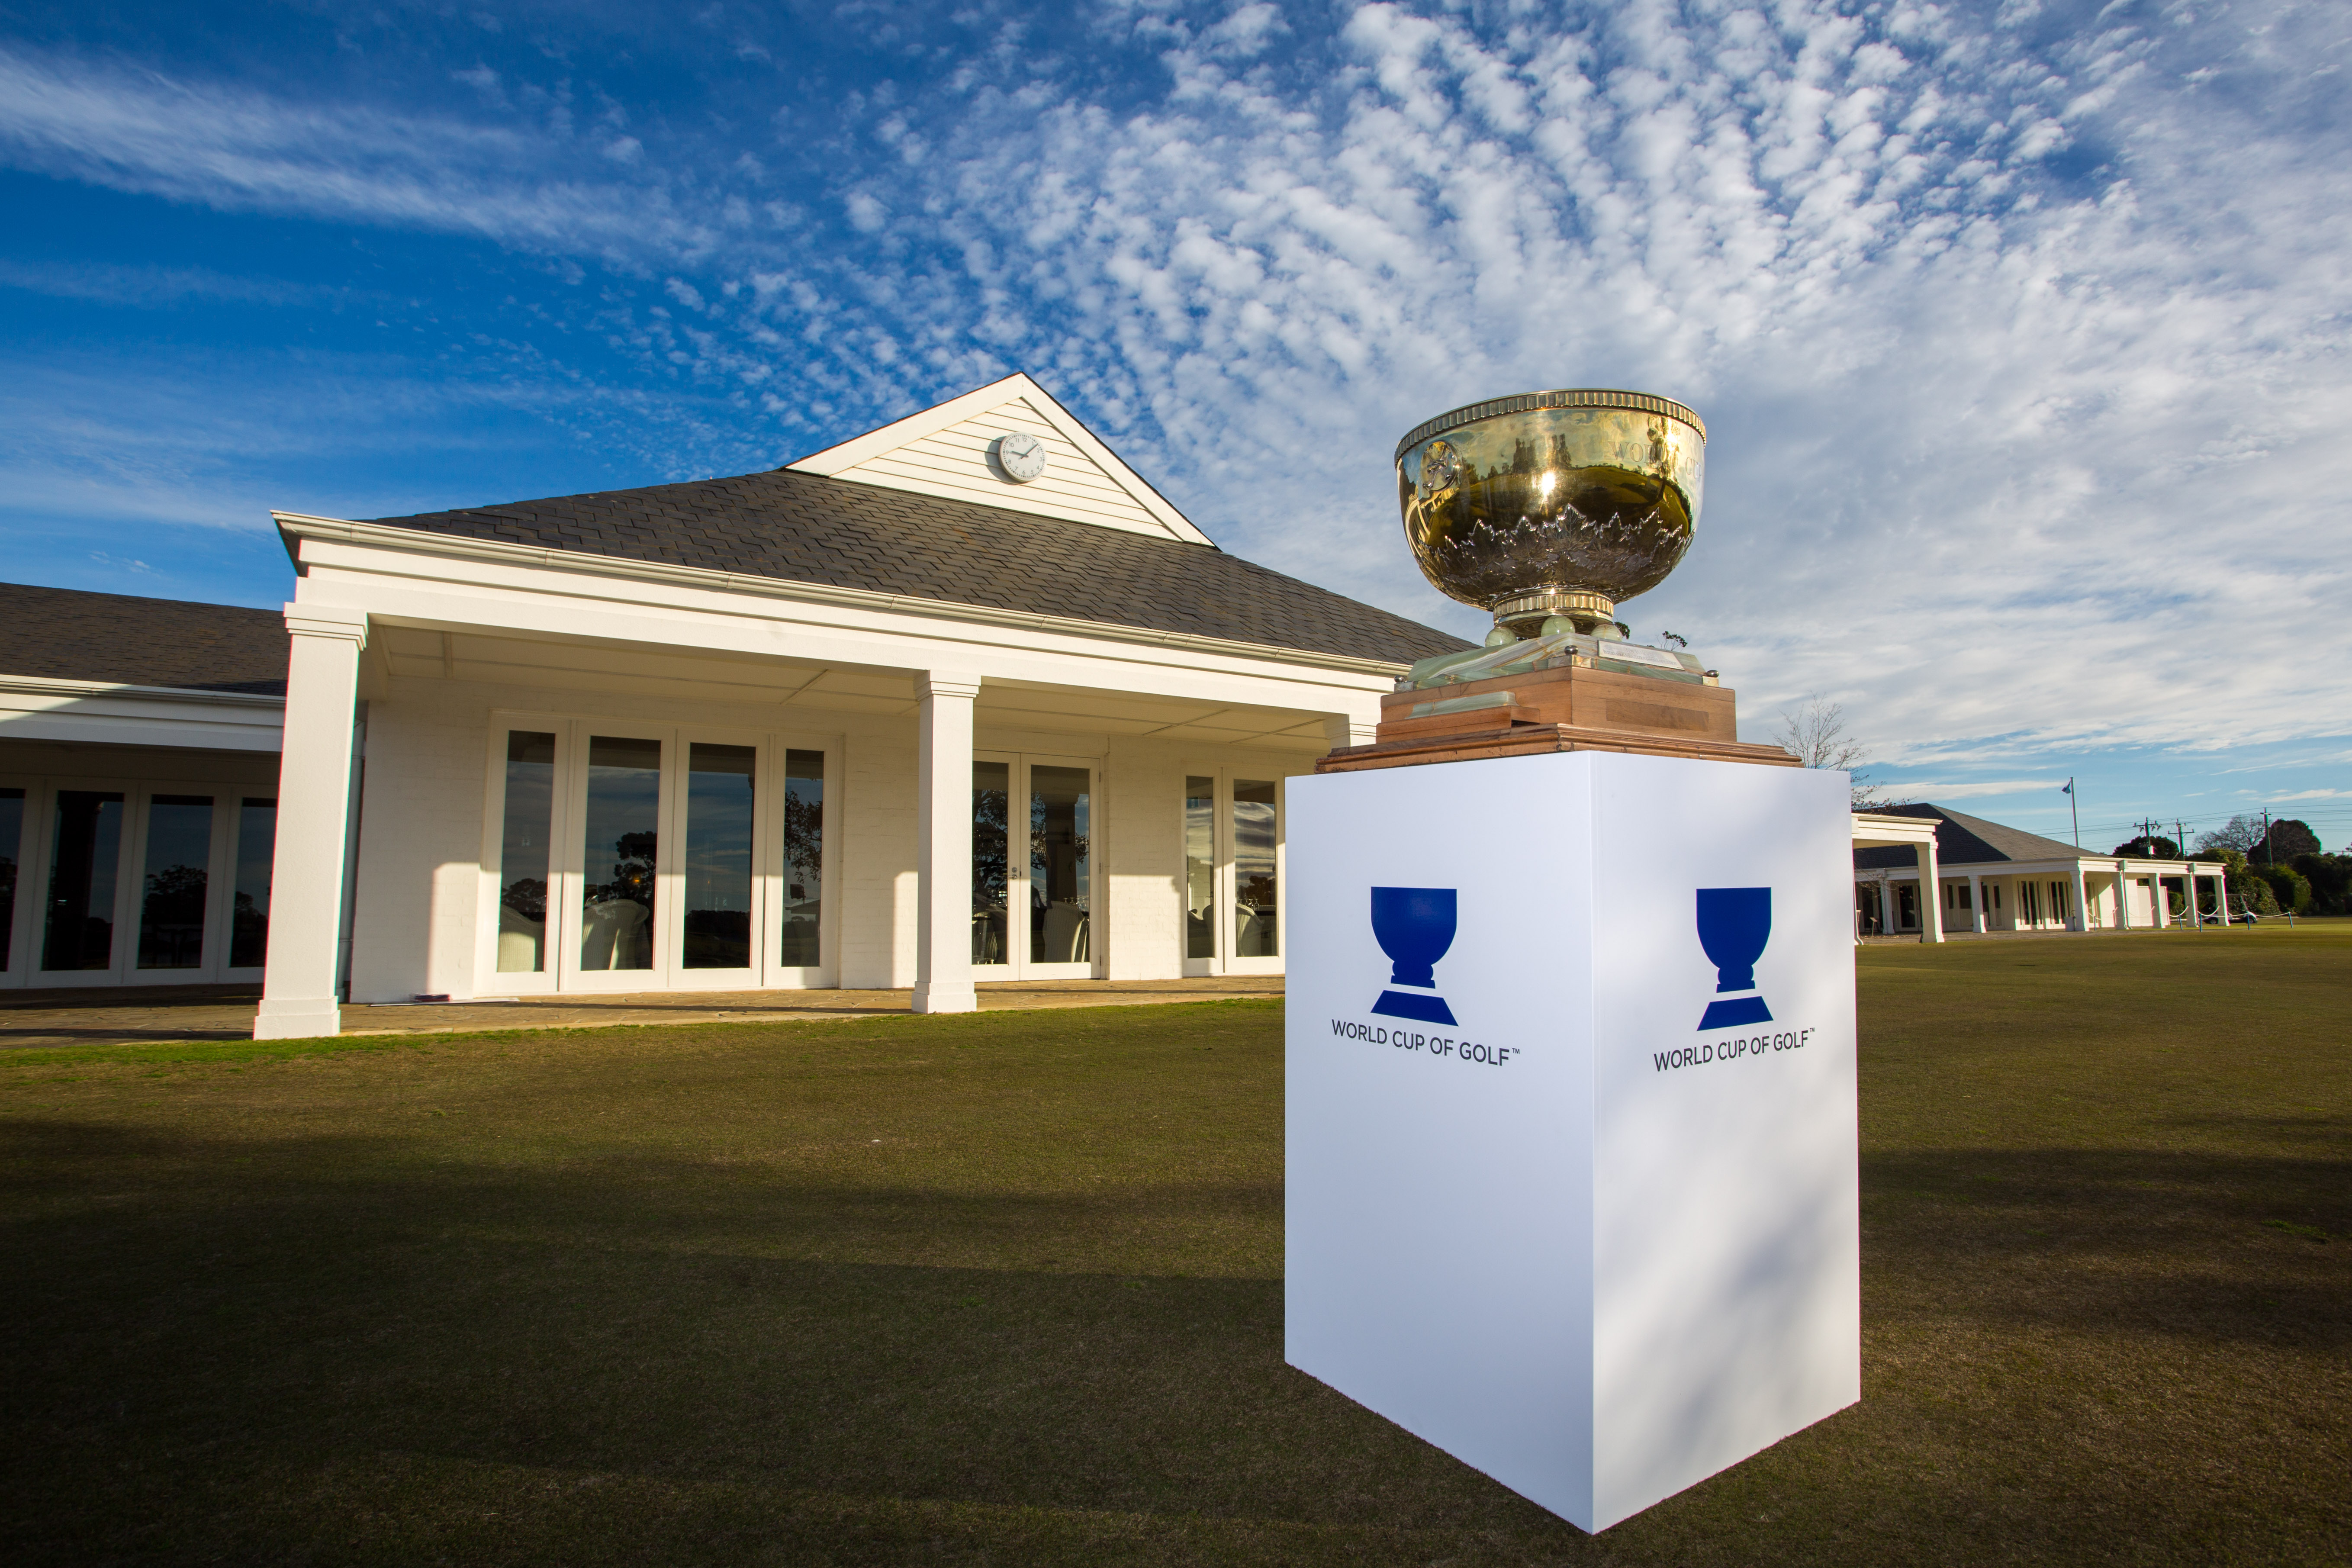 Kingston Heath Golf Club Clubhouse and WCoG trophy